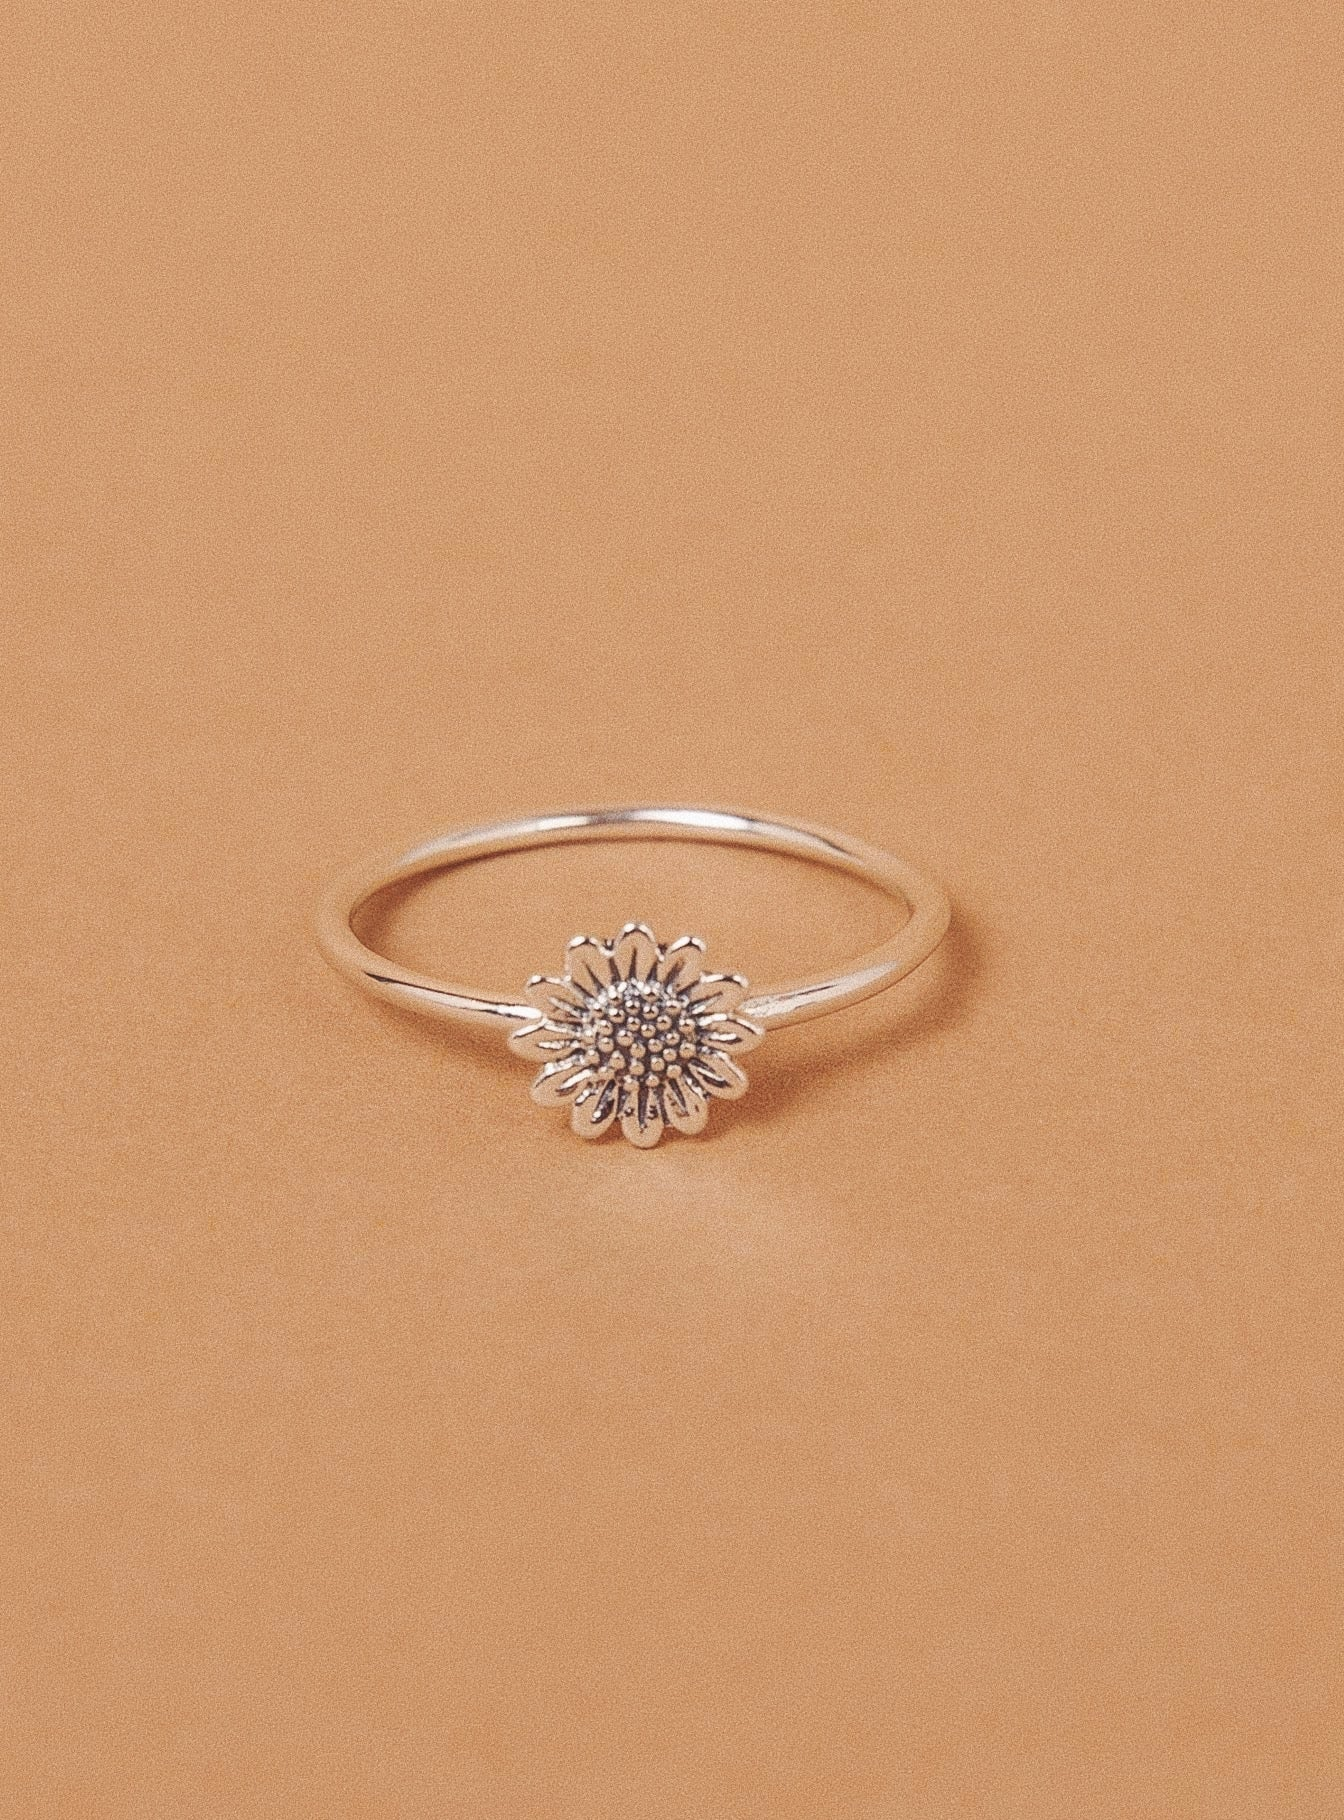 Midsummer Star Delicate Sunflower Ring Silver